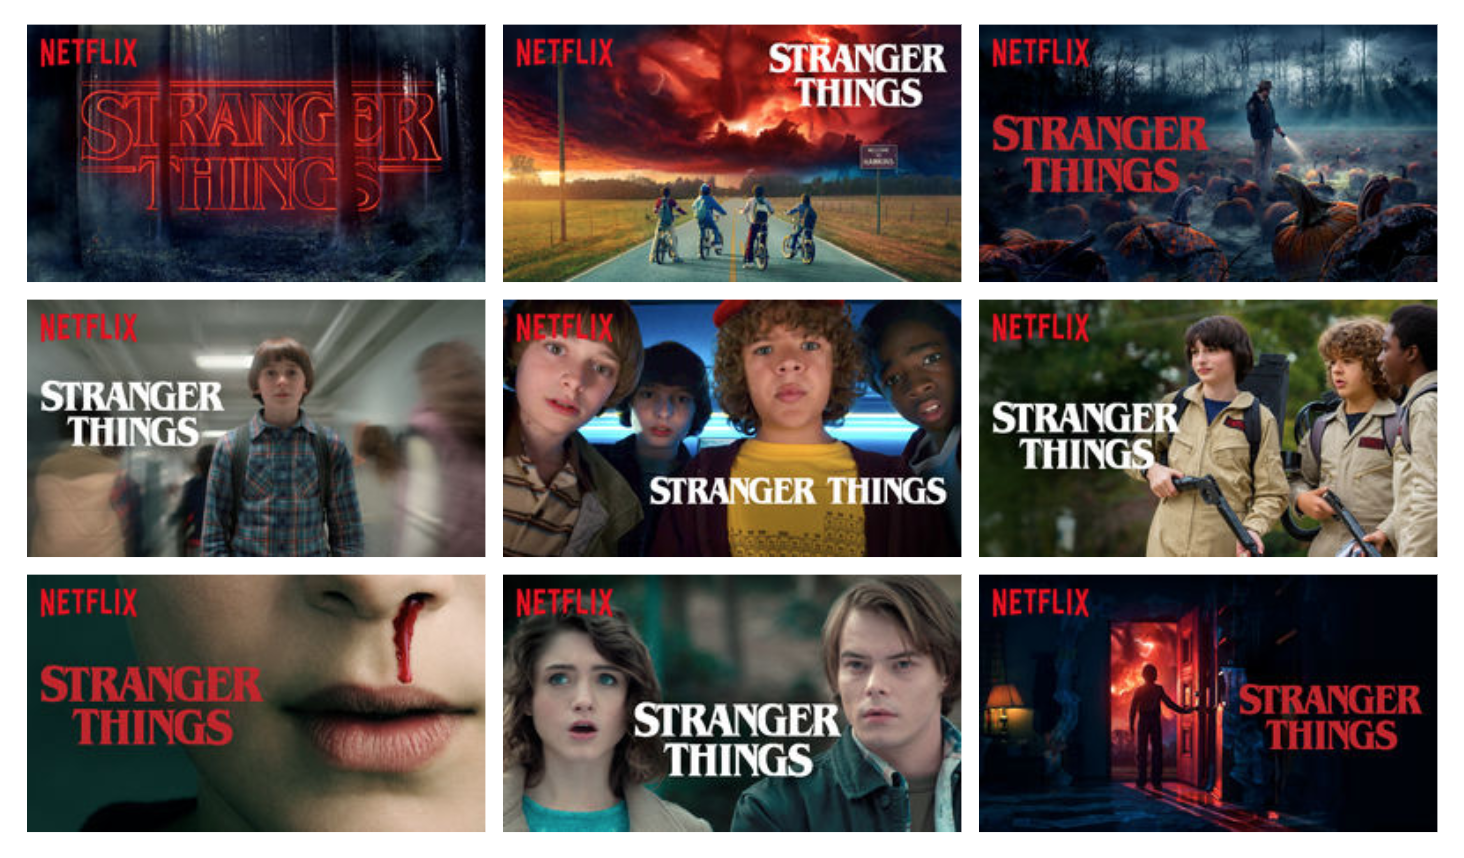 Netflix series Stranger Things and its algorithm in creating artworks